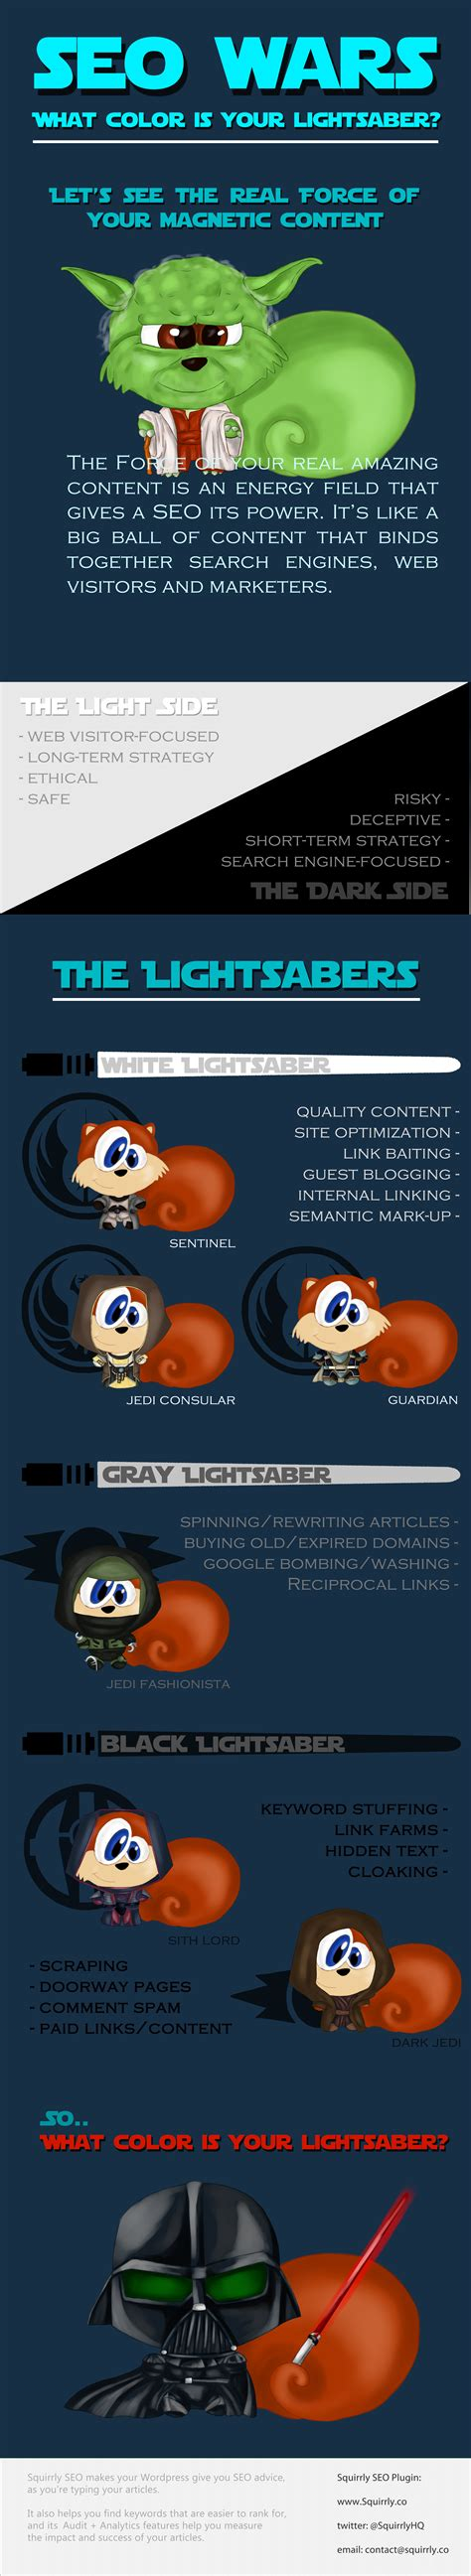 what color is your lightsaber seo wars what color is your lightsaber squirrly